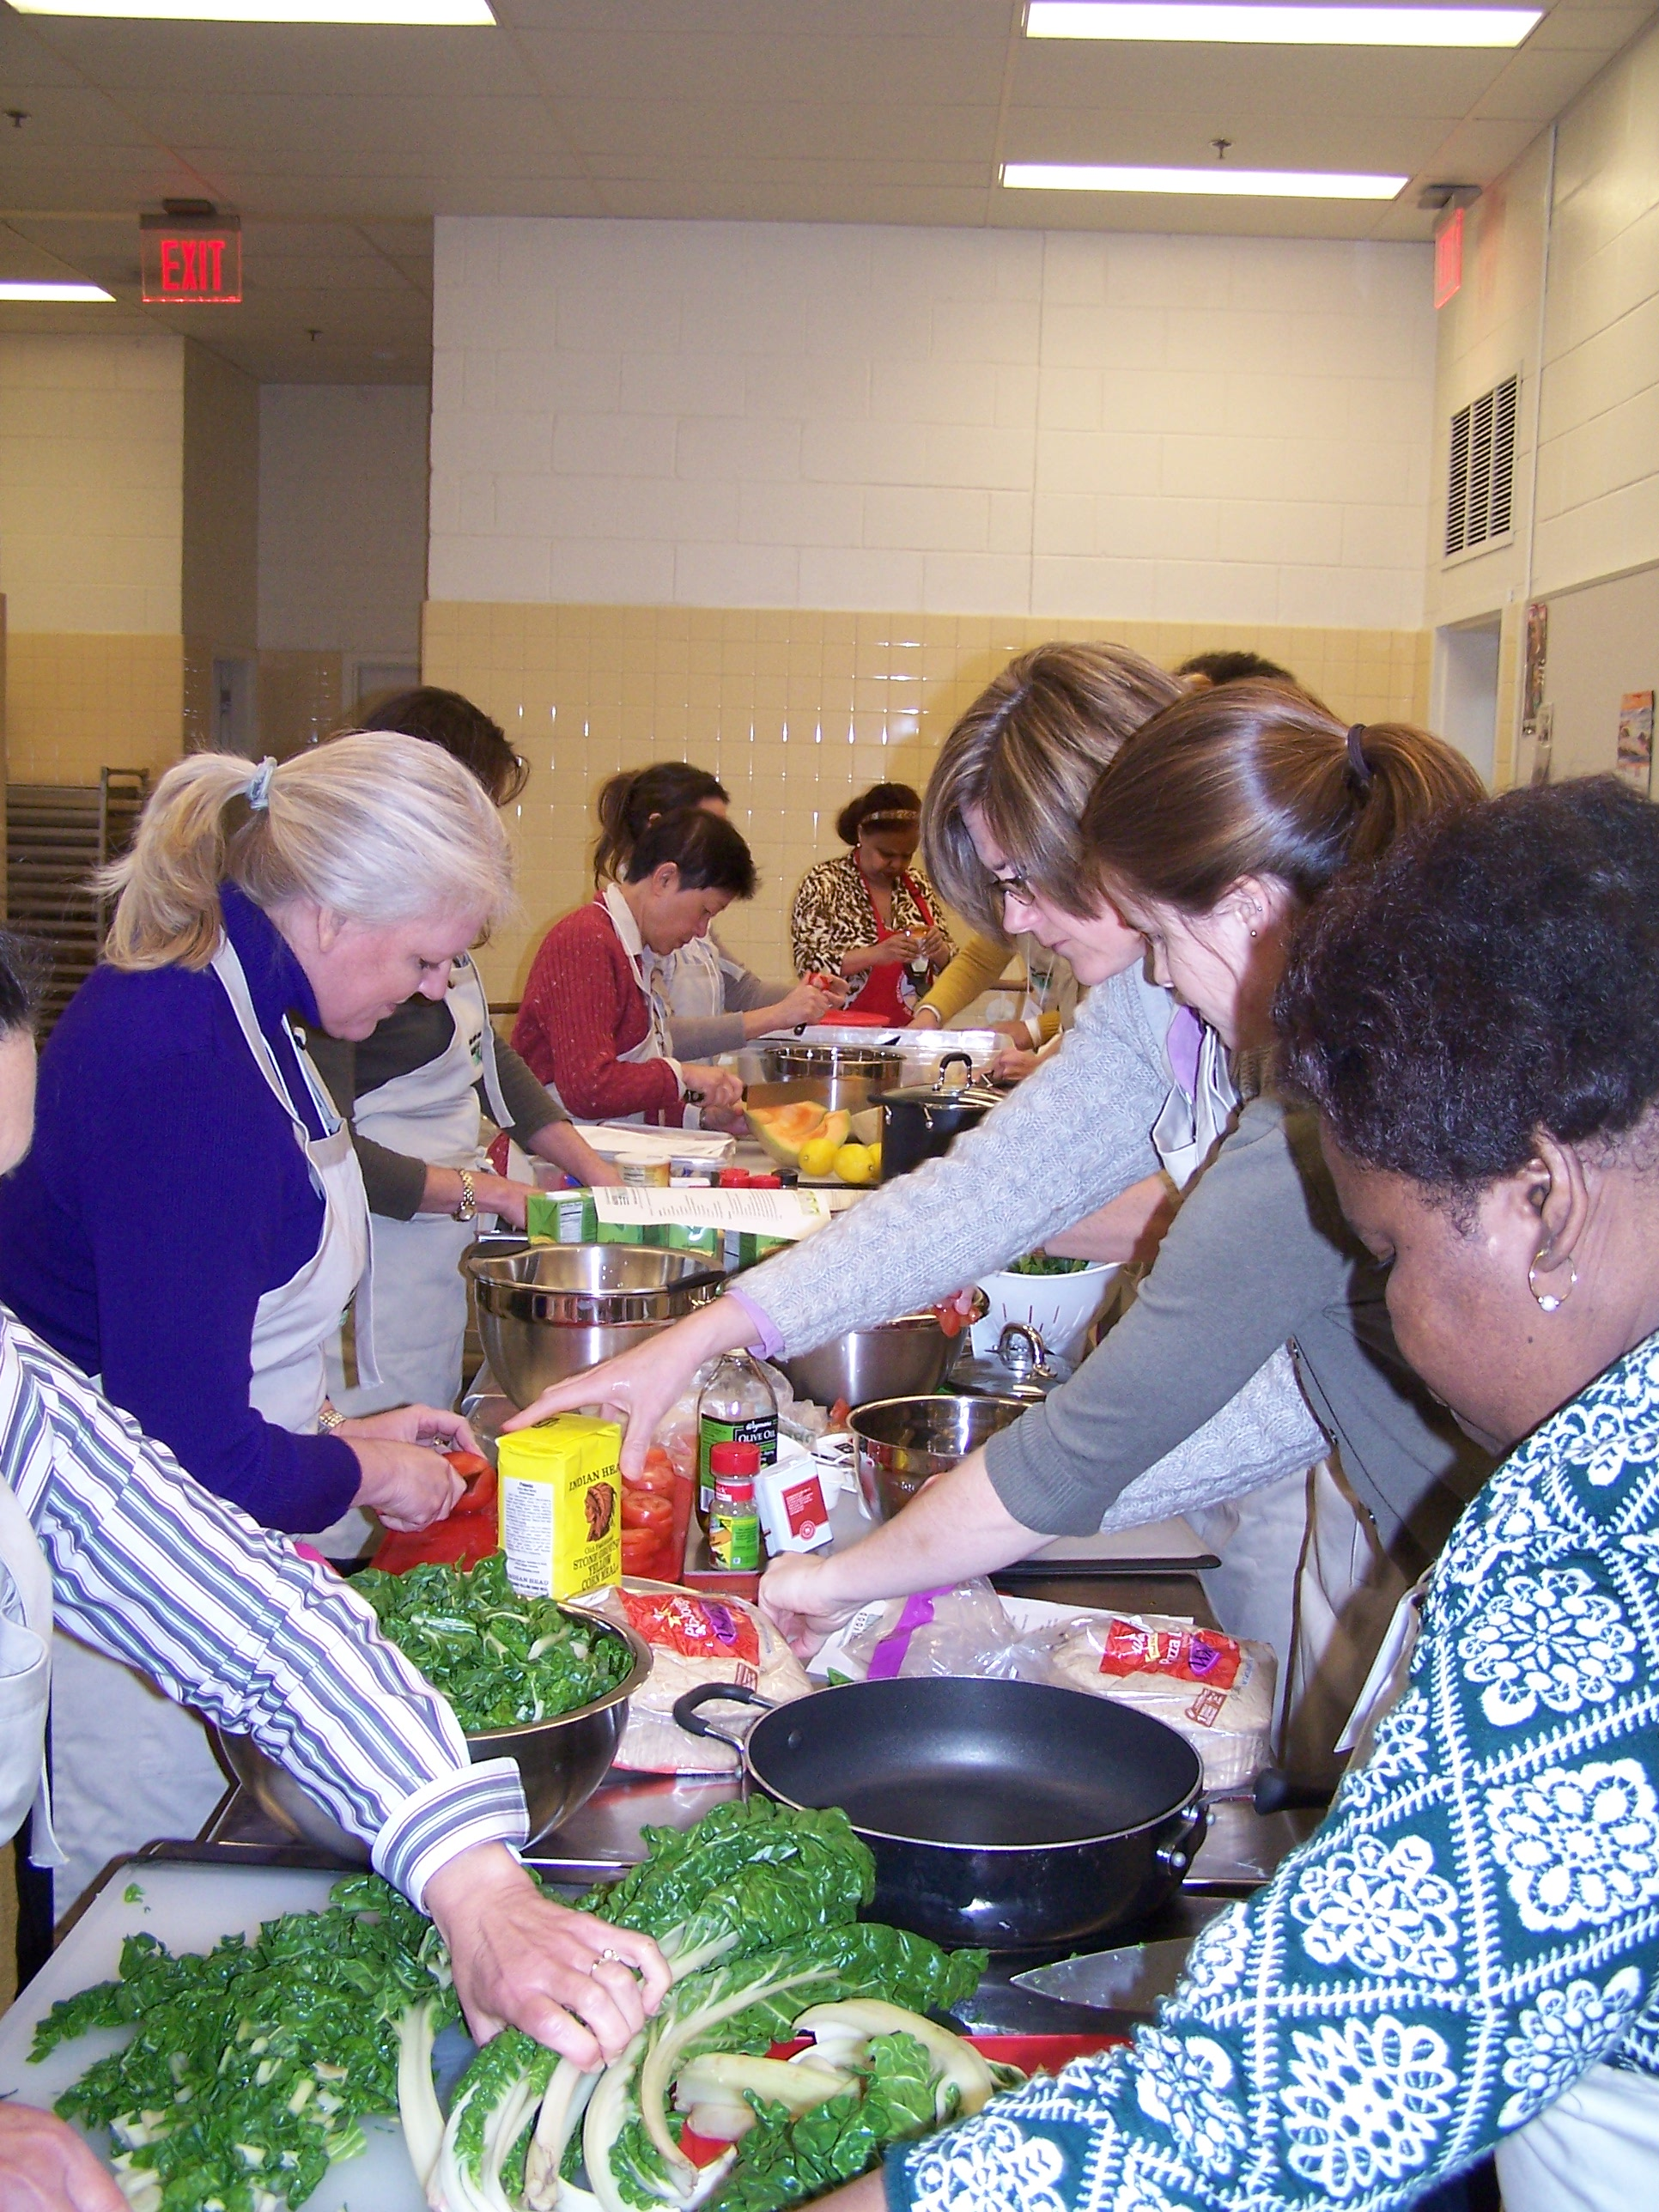 Participants in the 2013 training prepare a healthy lunch